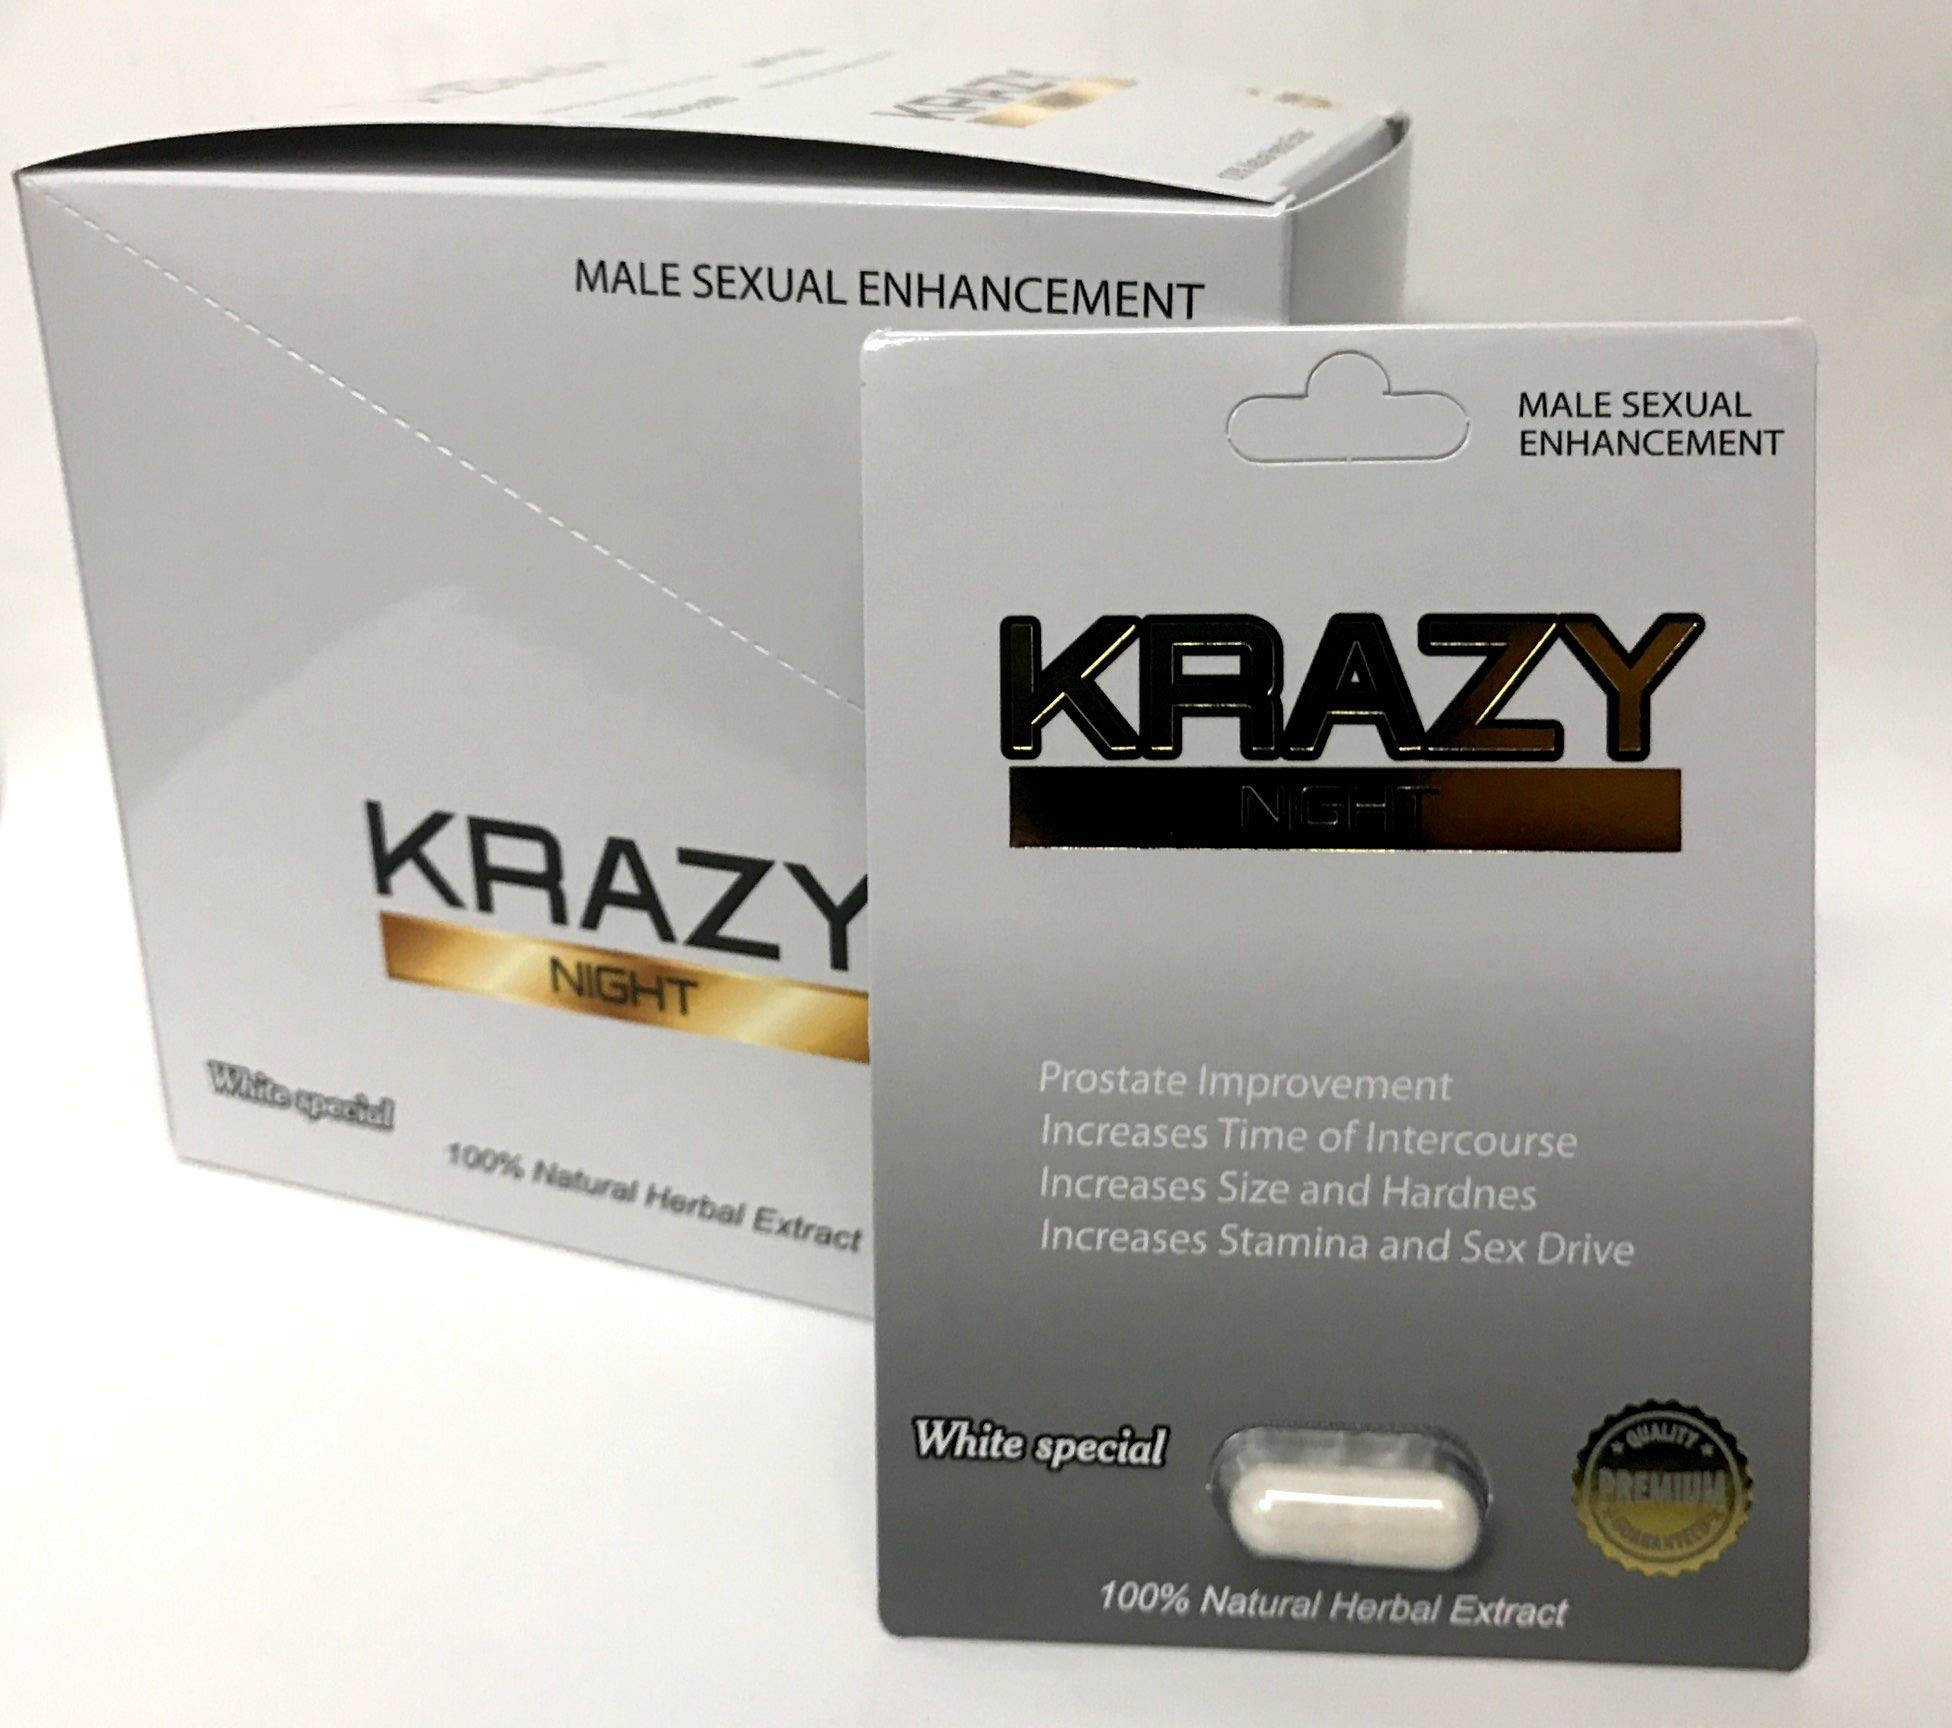 Nuri Krazy Night White Special Best Fast Acting Long Lasting Male Enhancing Pills (24 Pills in The Box)